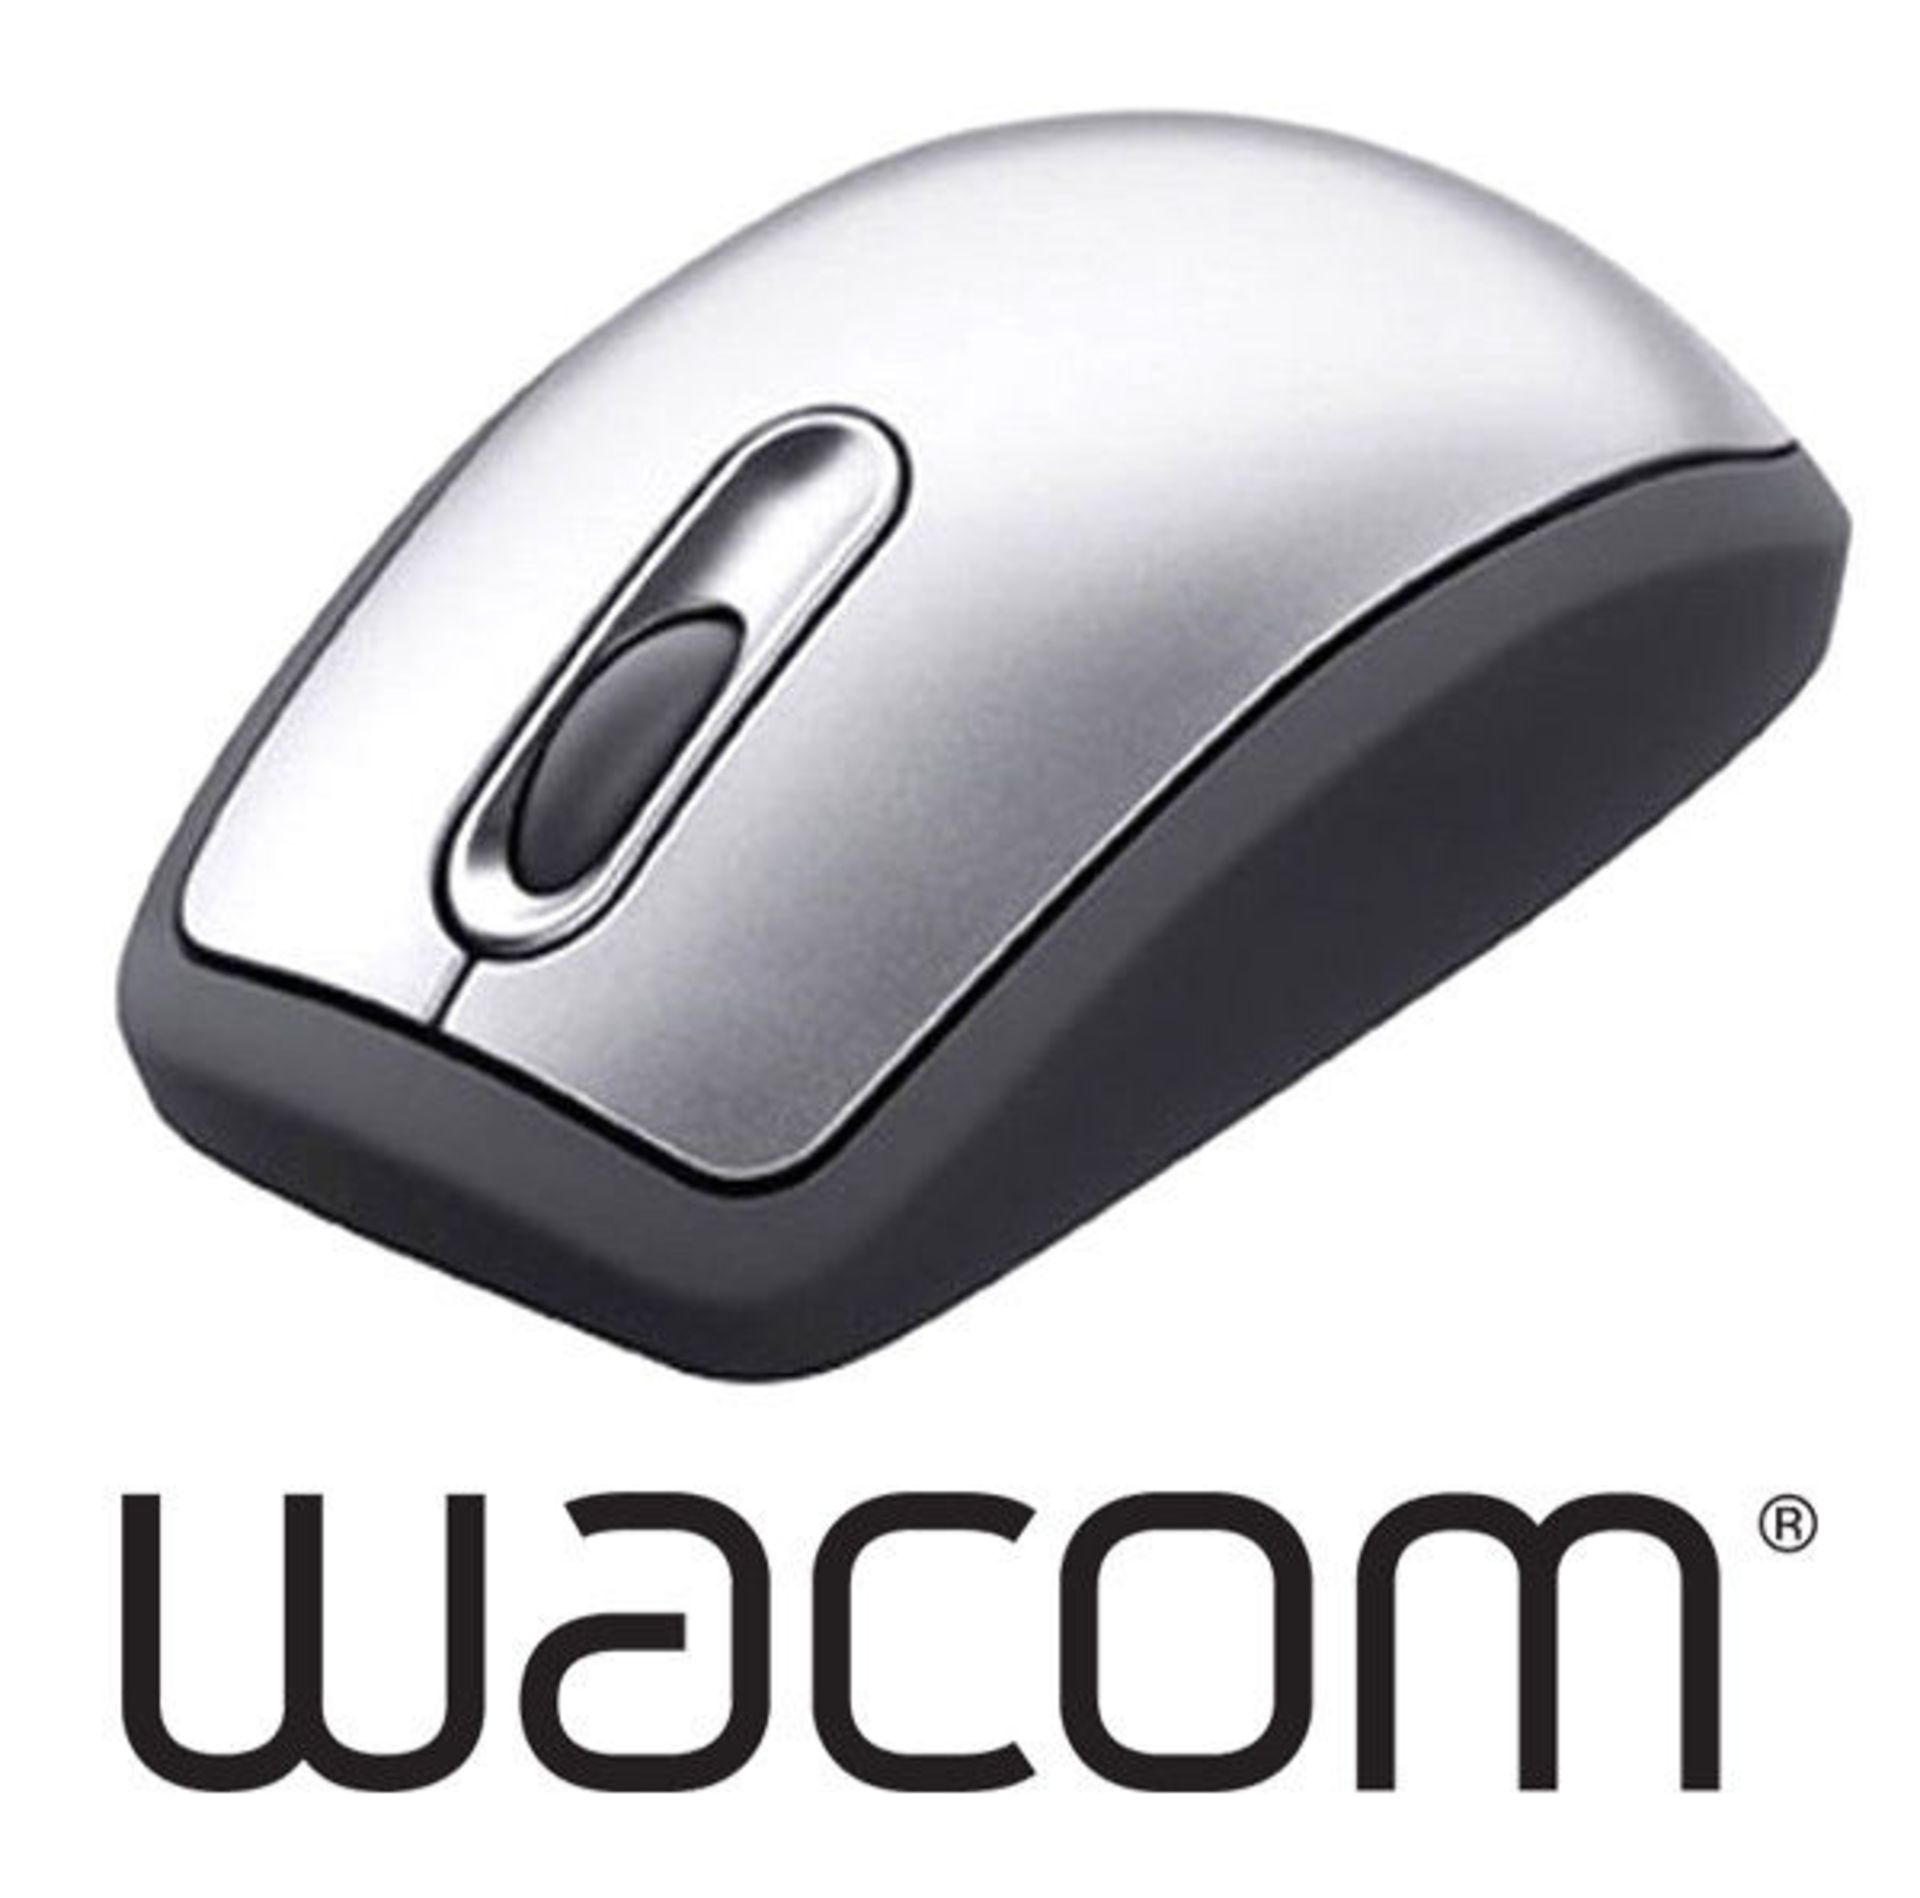 Brand New Wacom Graphire 4 Cordless Compuer Mouse